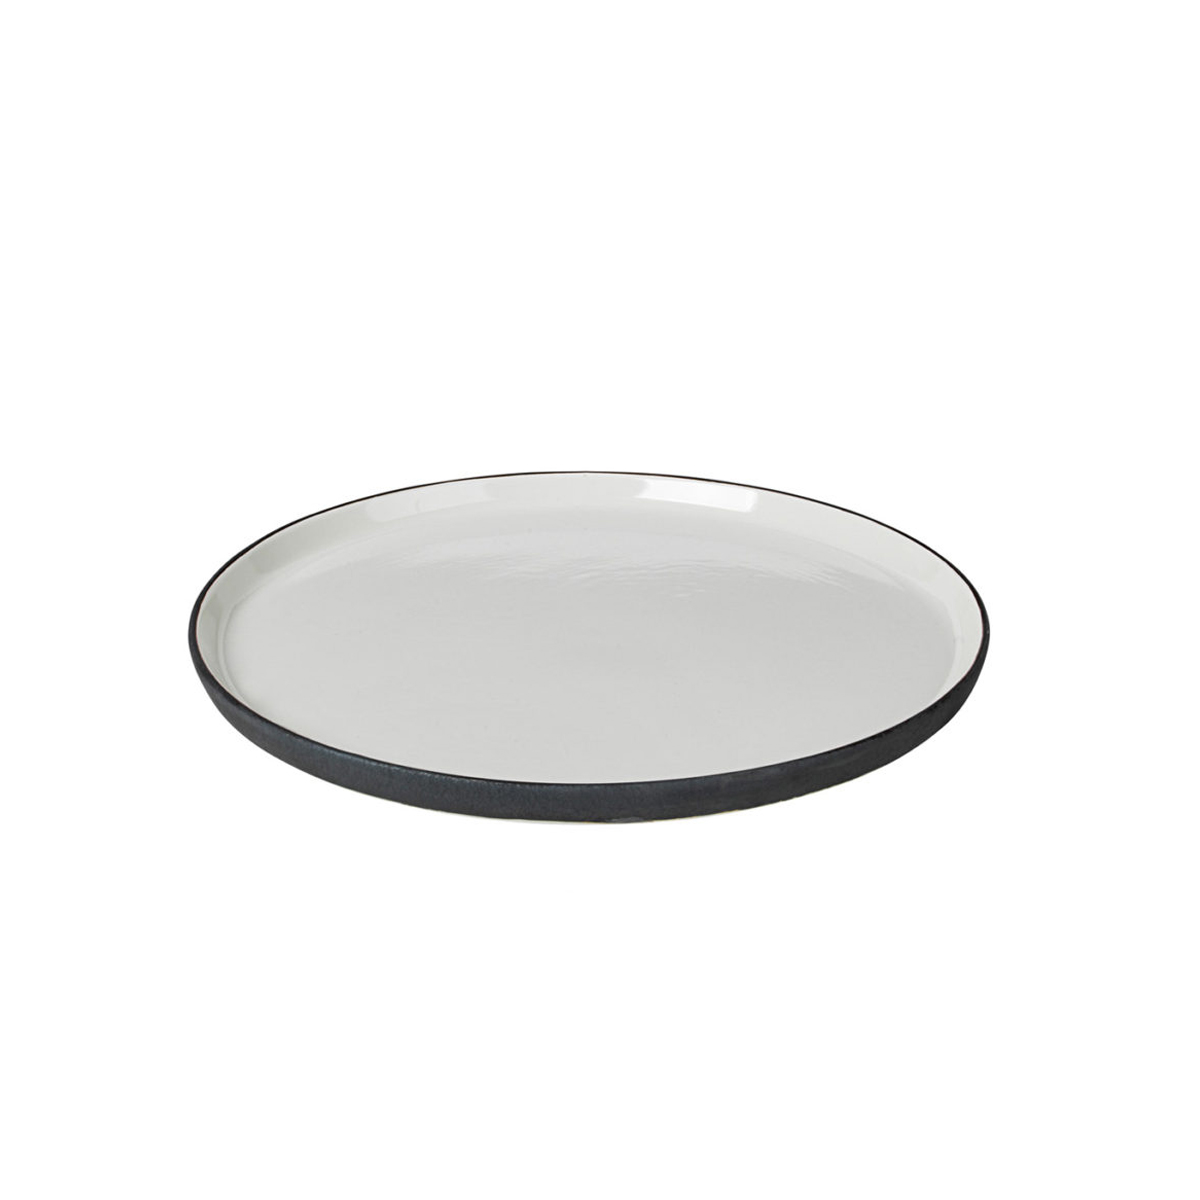 esrum-side-plate-broste